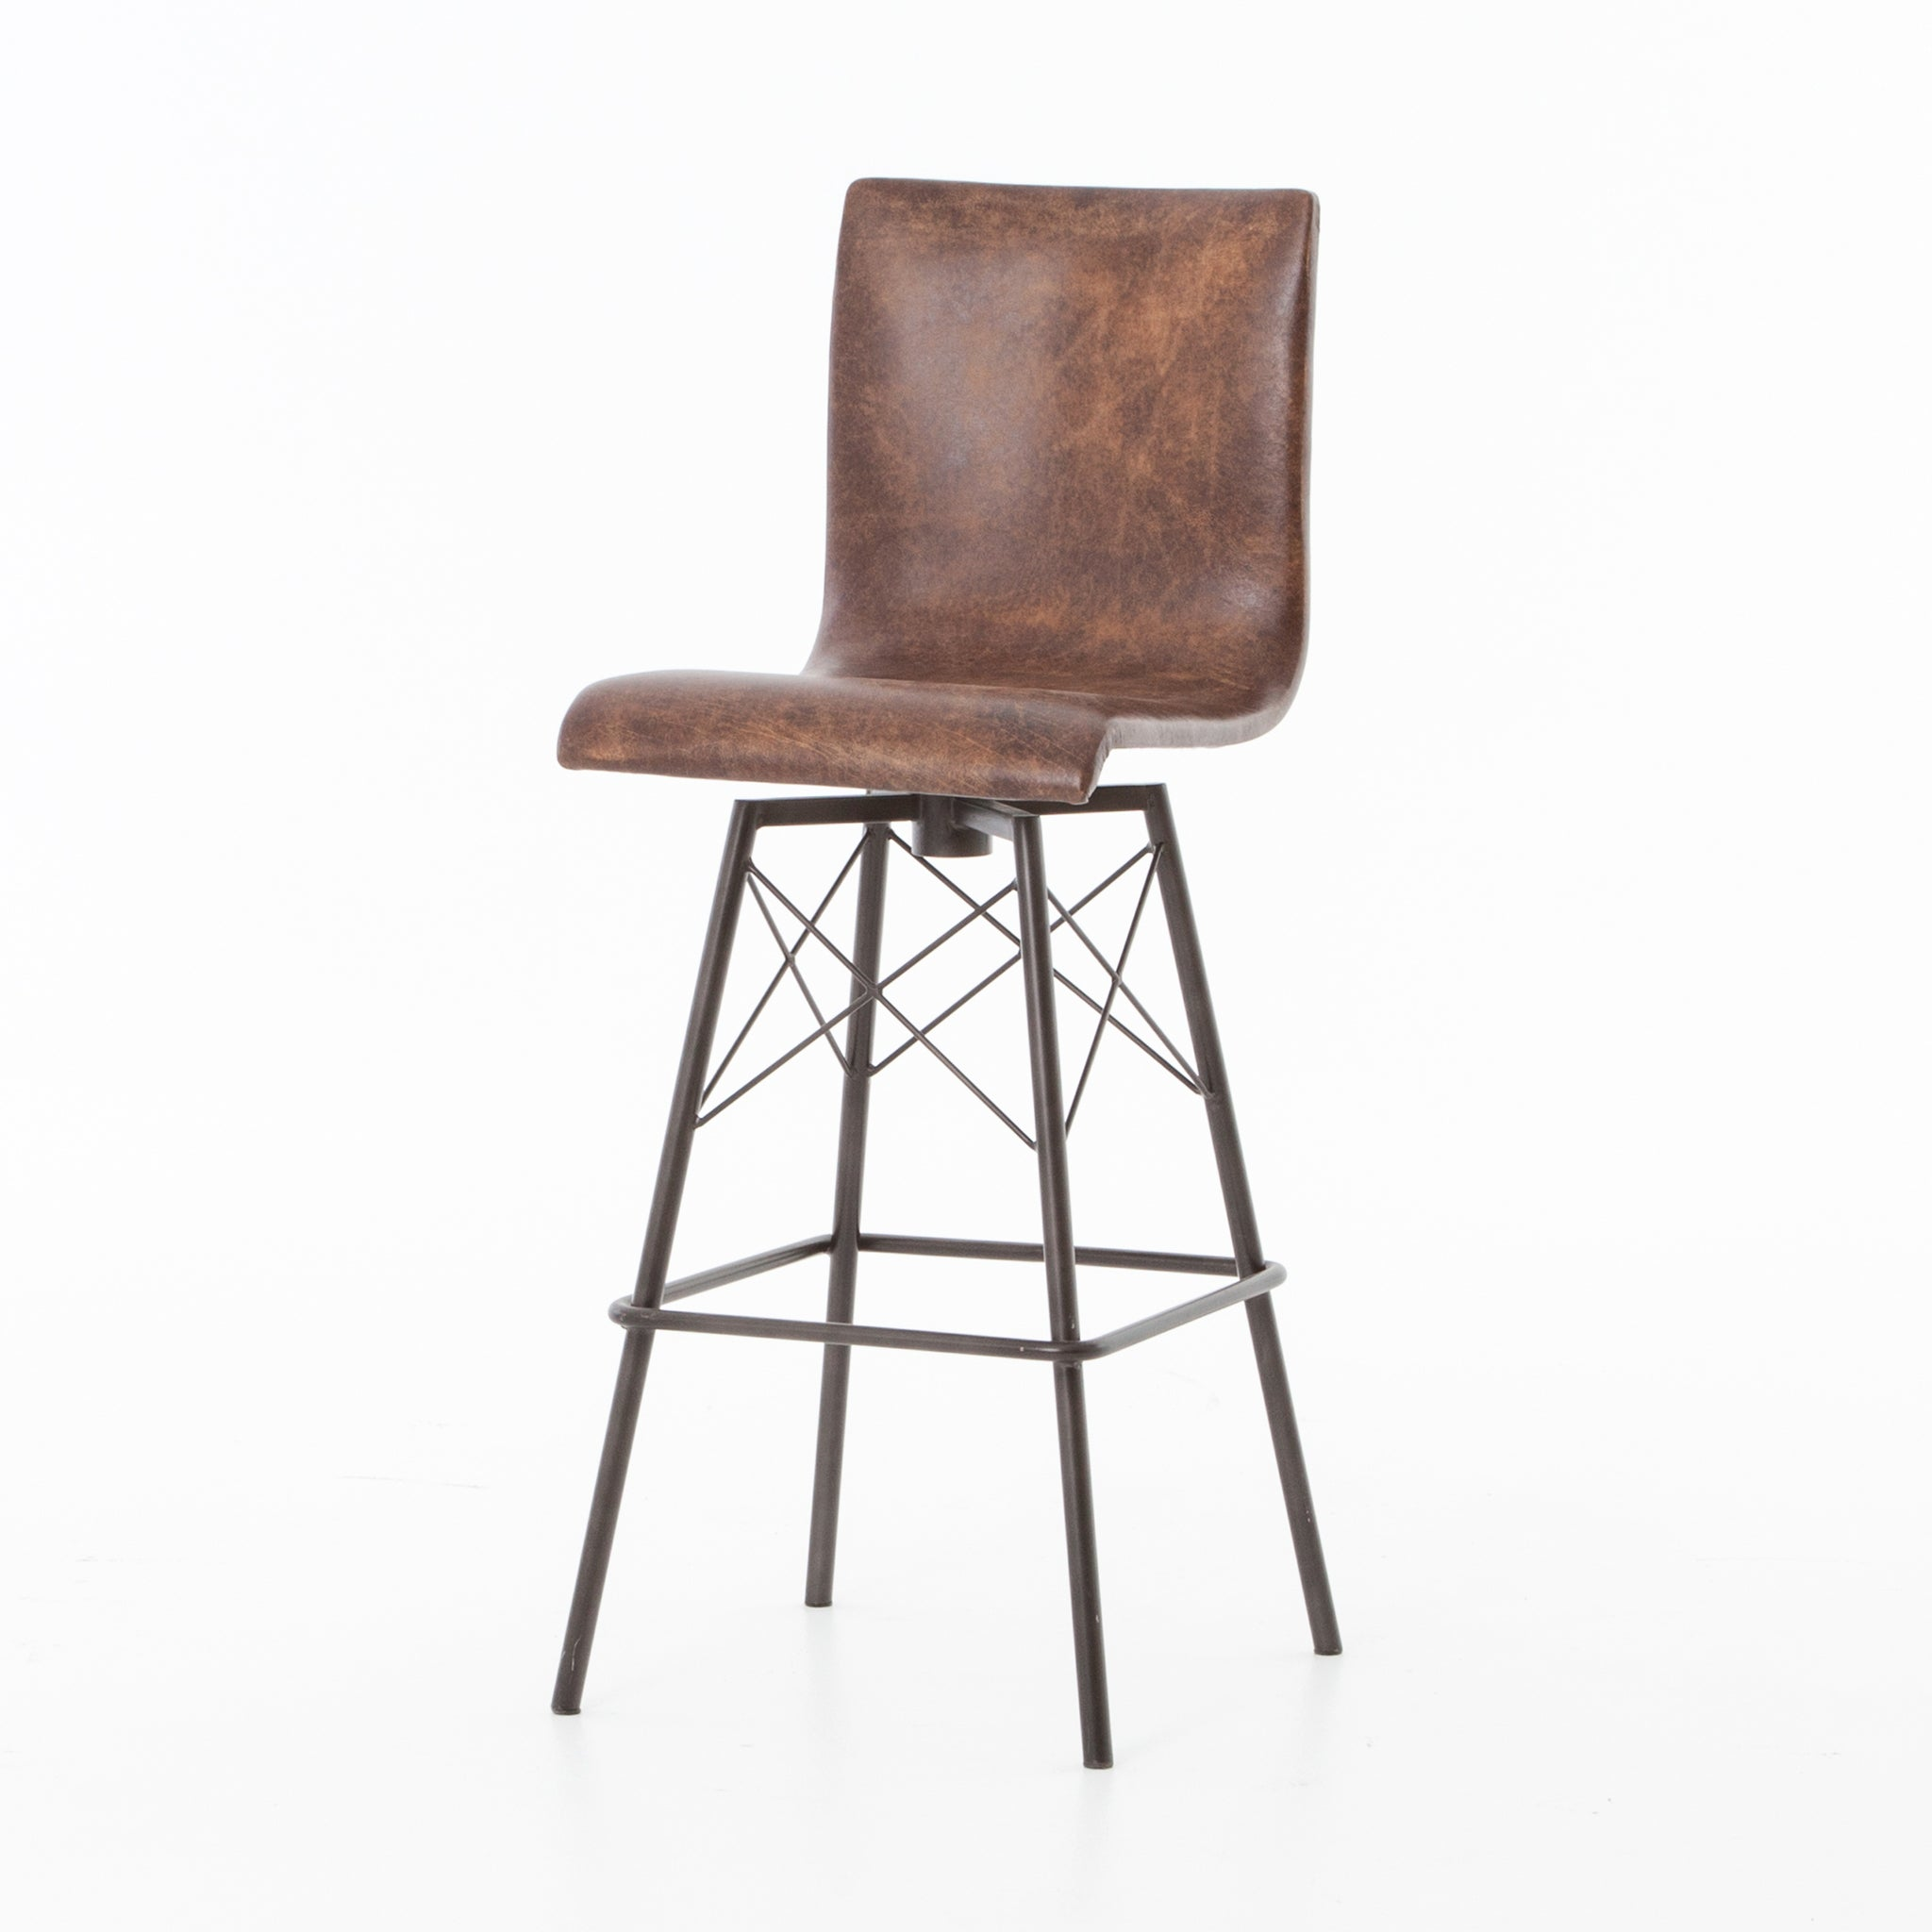 Enjoyable Mid Century Brown Leather Bar Height Barstools Set Of 3 Pdpeps Interior Chair Design Pdpepsorg